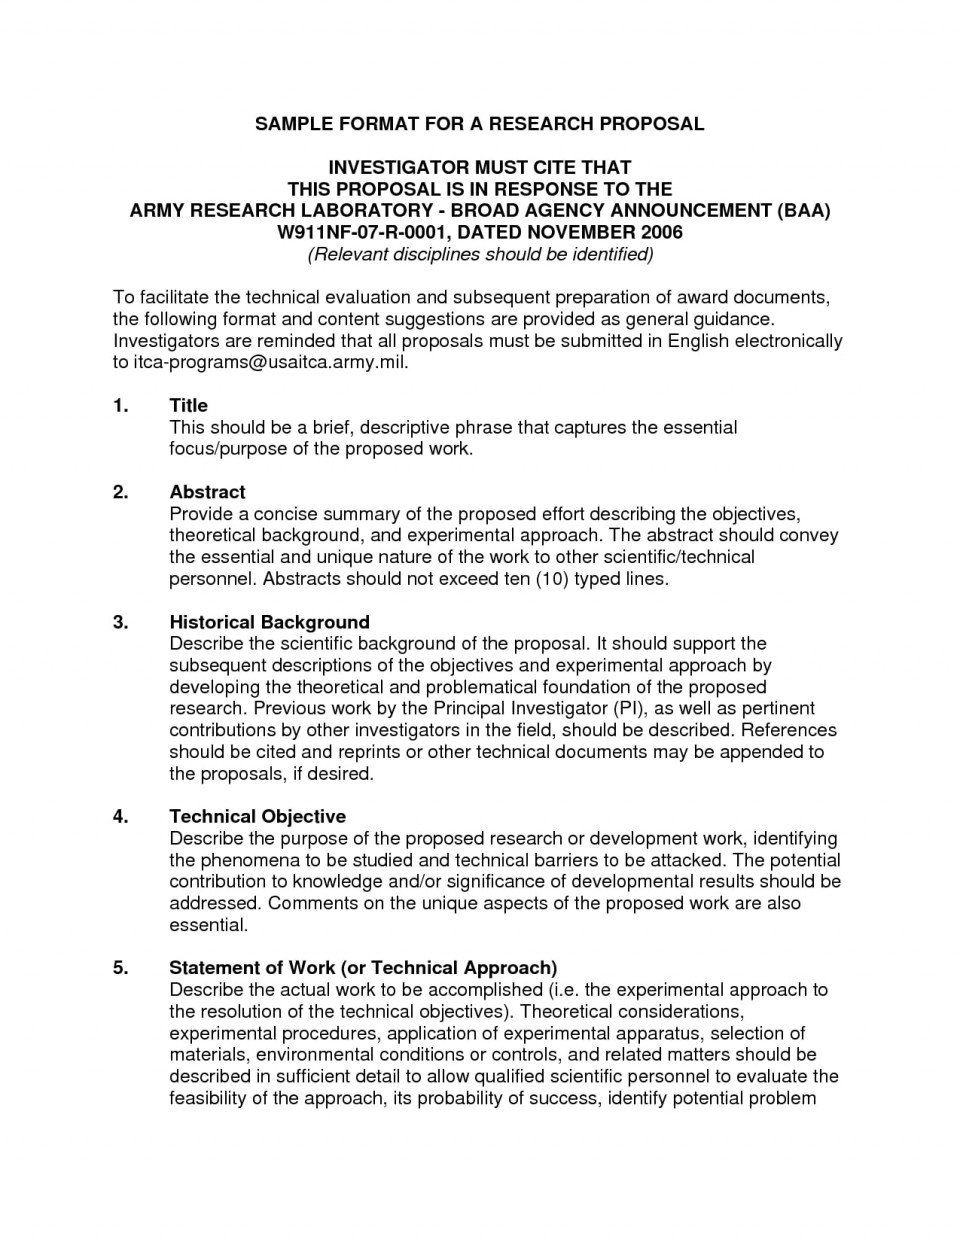 003 6781019586 Action Research Proposal Sample Pdf Paper How To Write Sensational Scientific And Publish A Computer Science 960